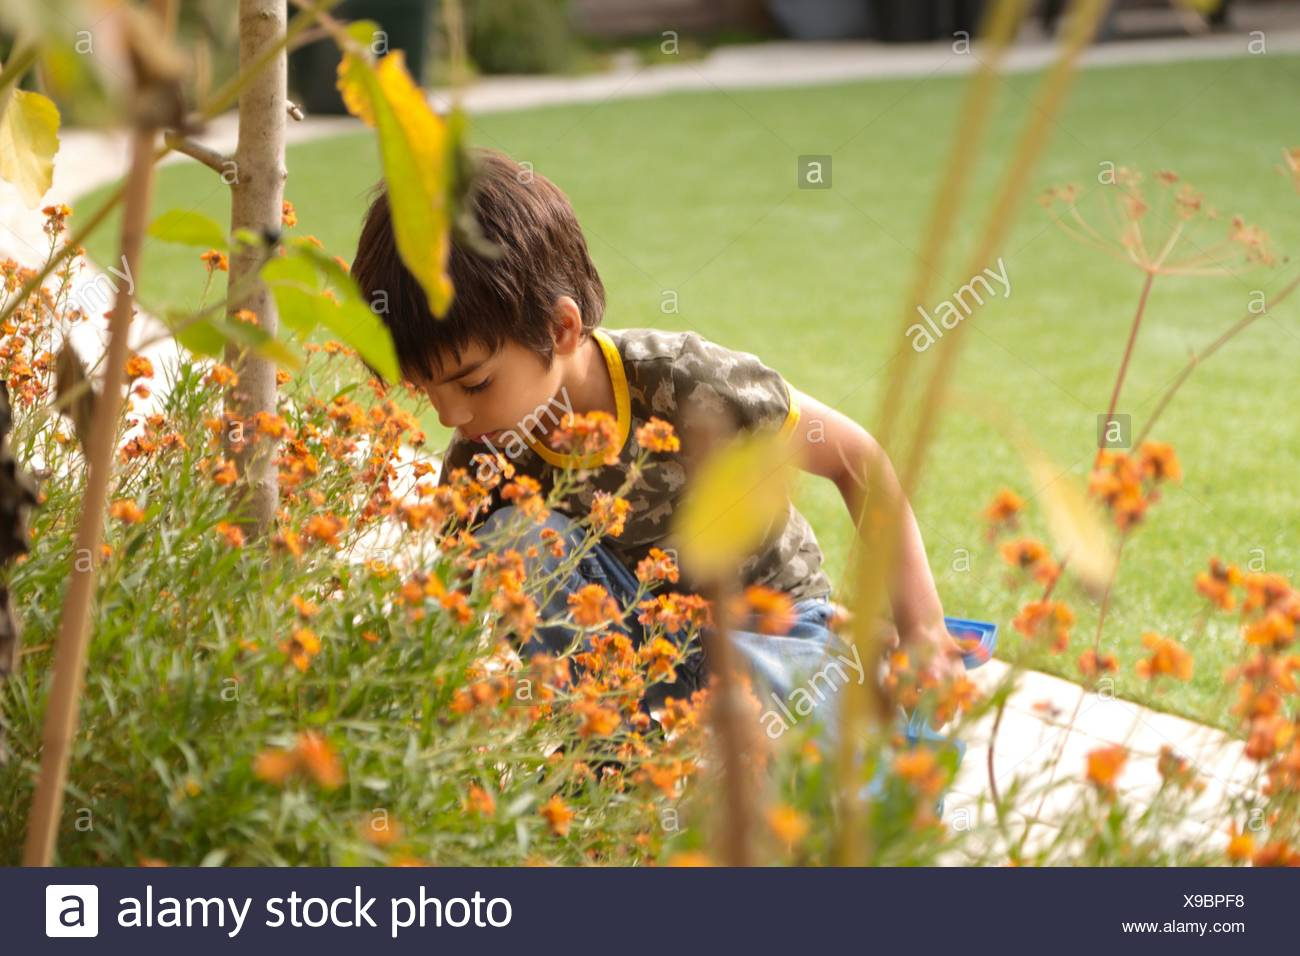 View through plants of boy crouched in garden holding spade looking down - Stock Image